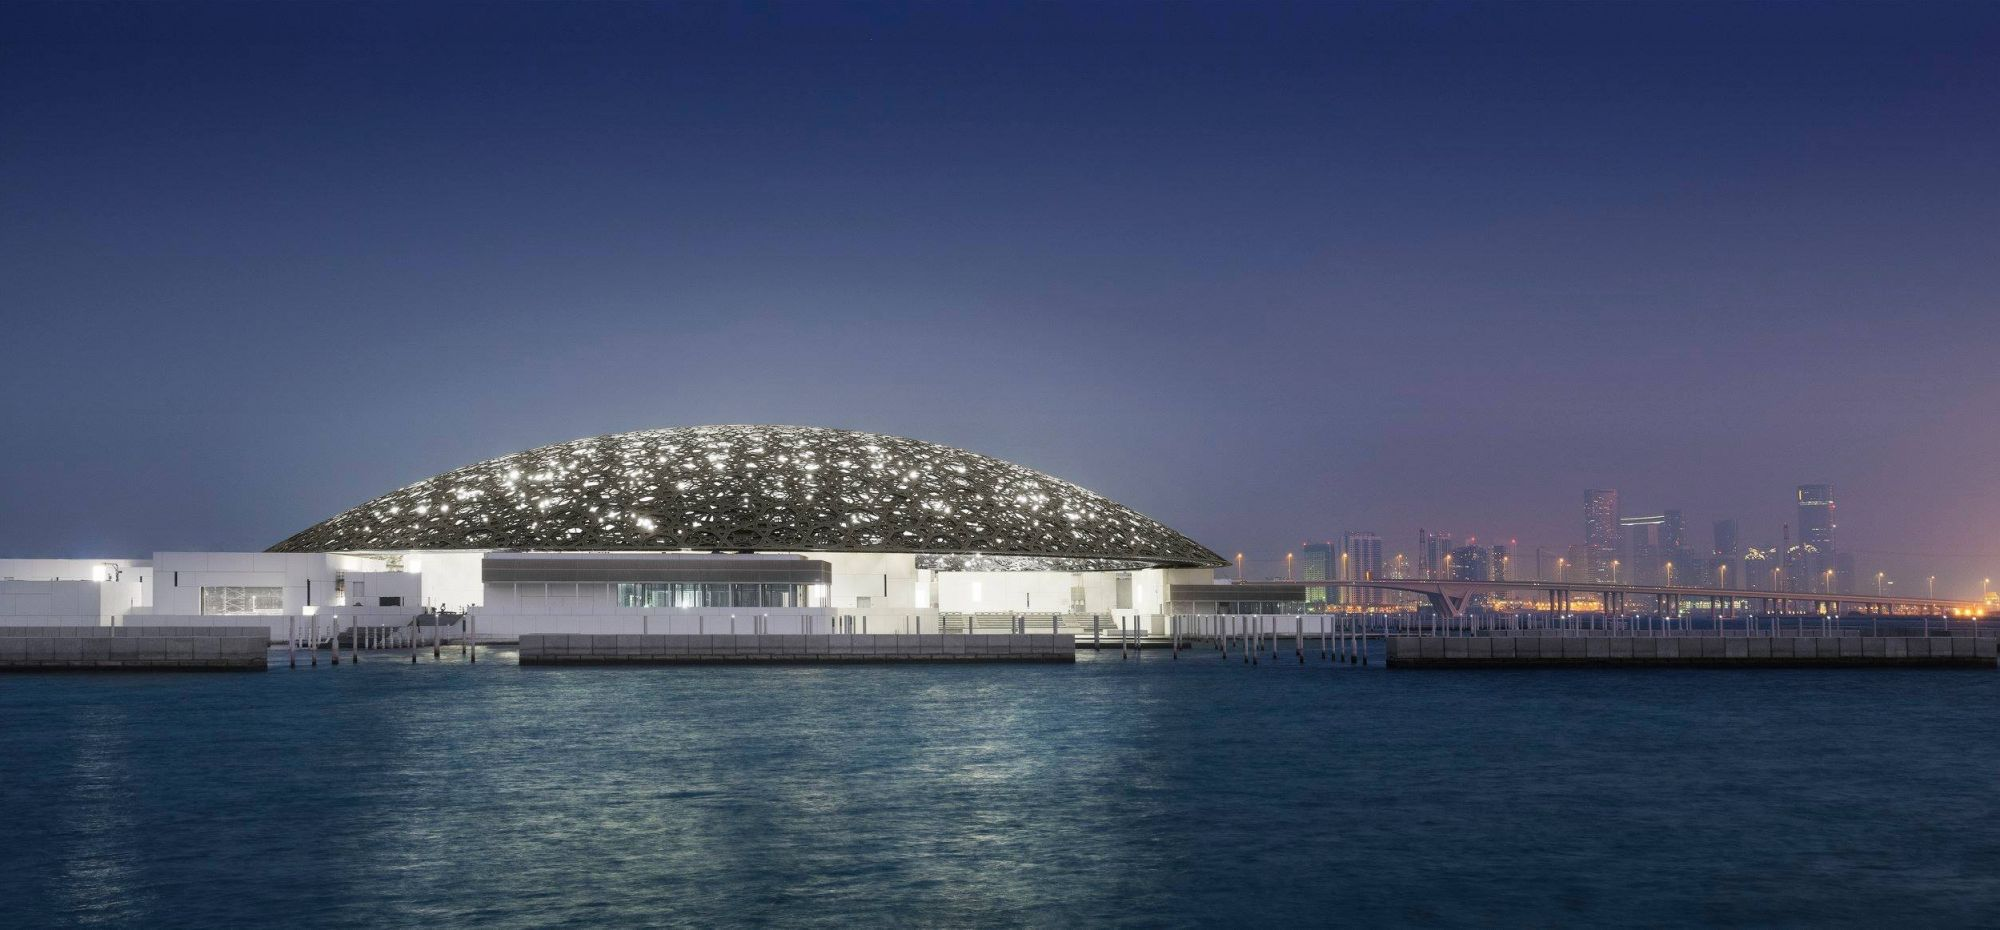 7 Things To Know About The Louvre Abu Dhabi